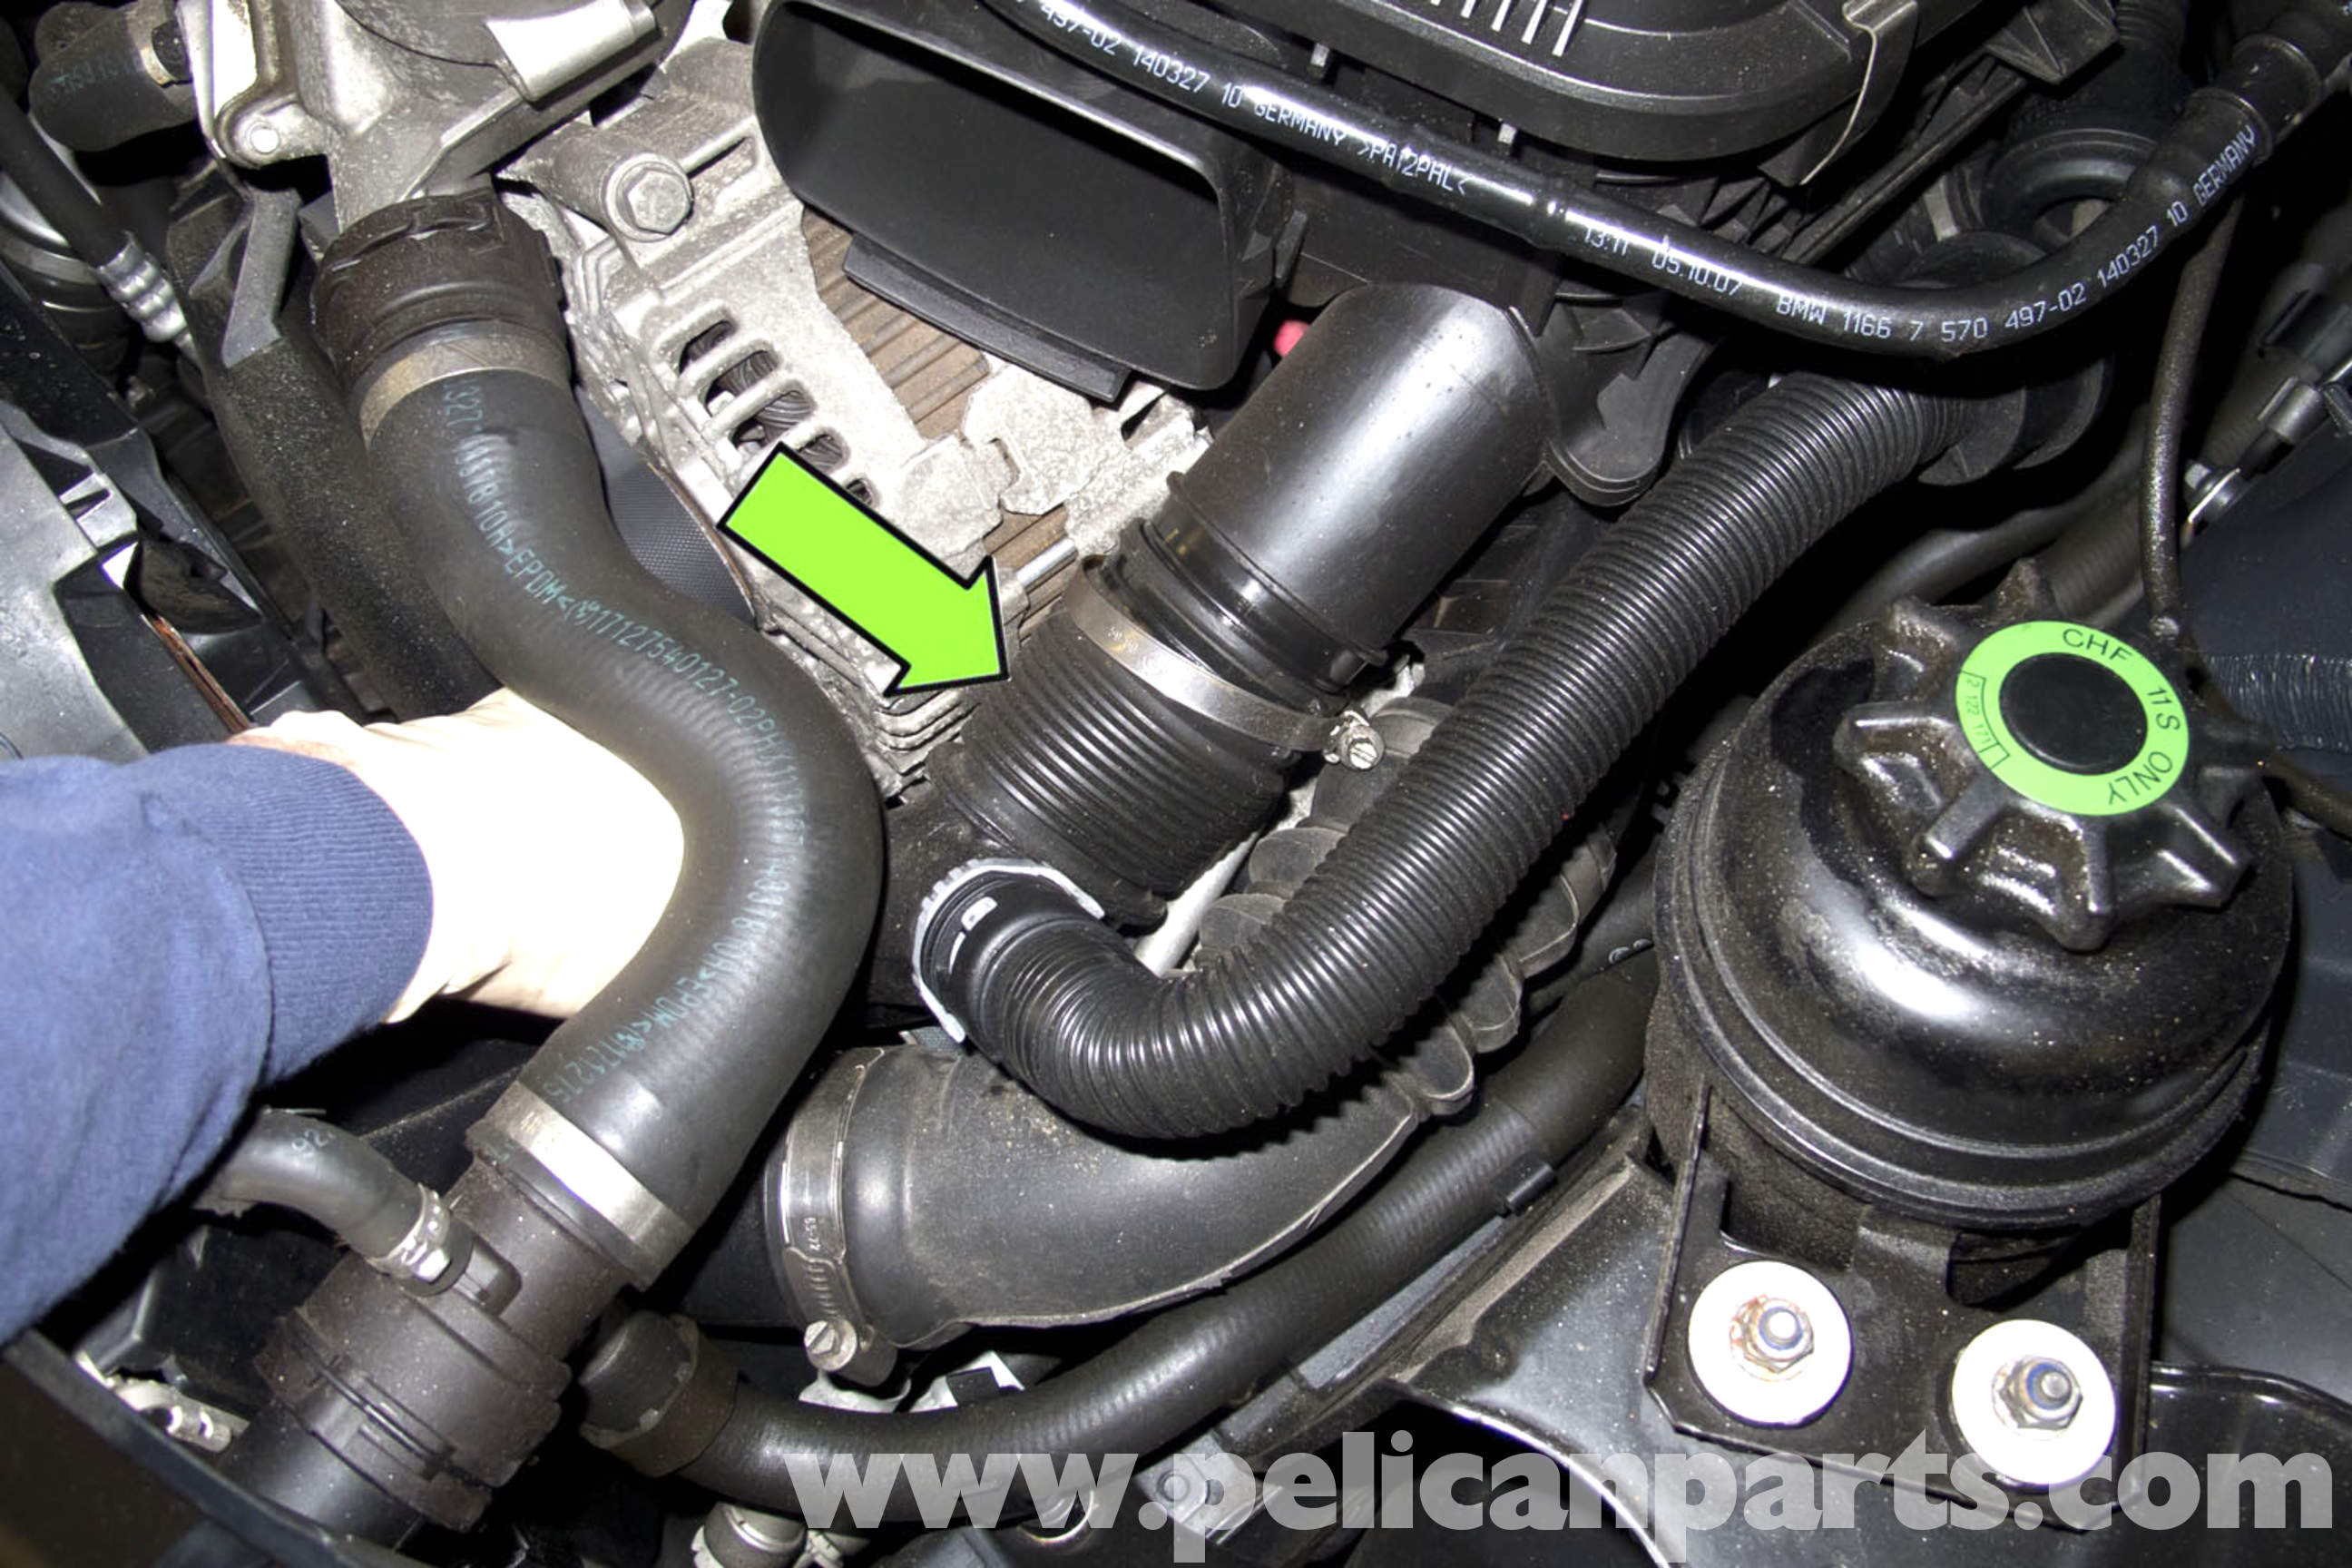 pic18 bmw e90 knock sensor replacement e91, e92, e93 pelican parts BMW E90 Music-Diagram at crackthecode.co